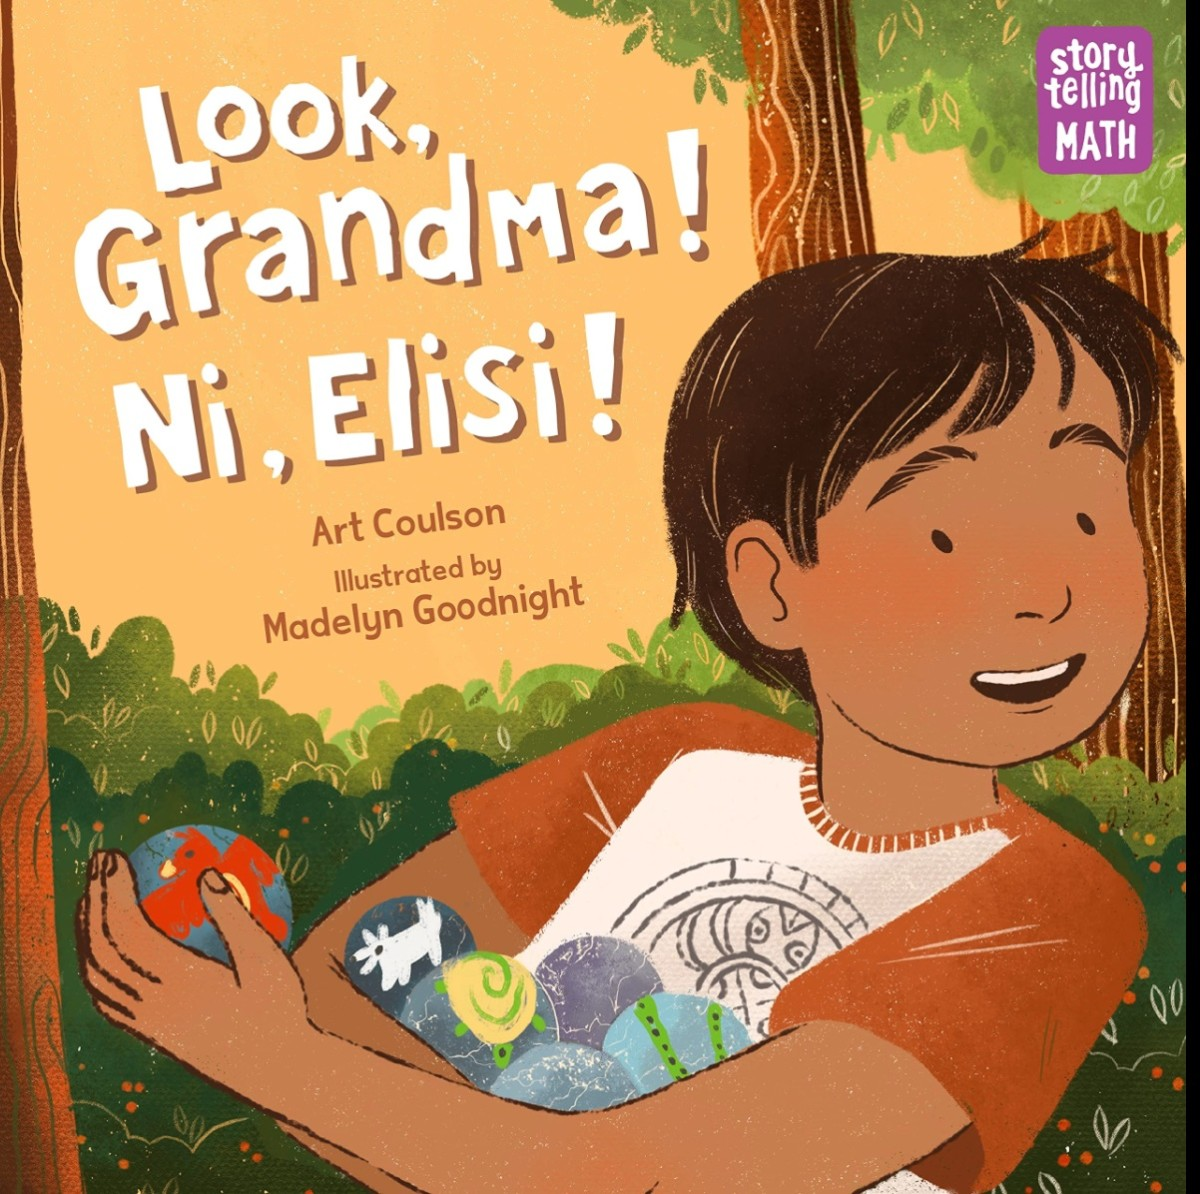 """Cherokee author Art Coulson is winning acclaim for his line of books for children and youths. His latest book, """"Look, Grandma! Ni, Elisi!,"""" released in 2021, is part of Charlesbridge's Storytelling Math series of picture books. It is illustrated by Madelyn Goodnight. (Photo courtesy of Charlesbridge)"""